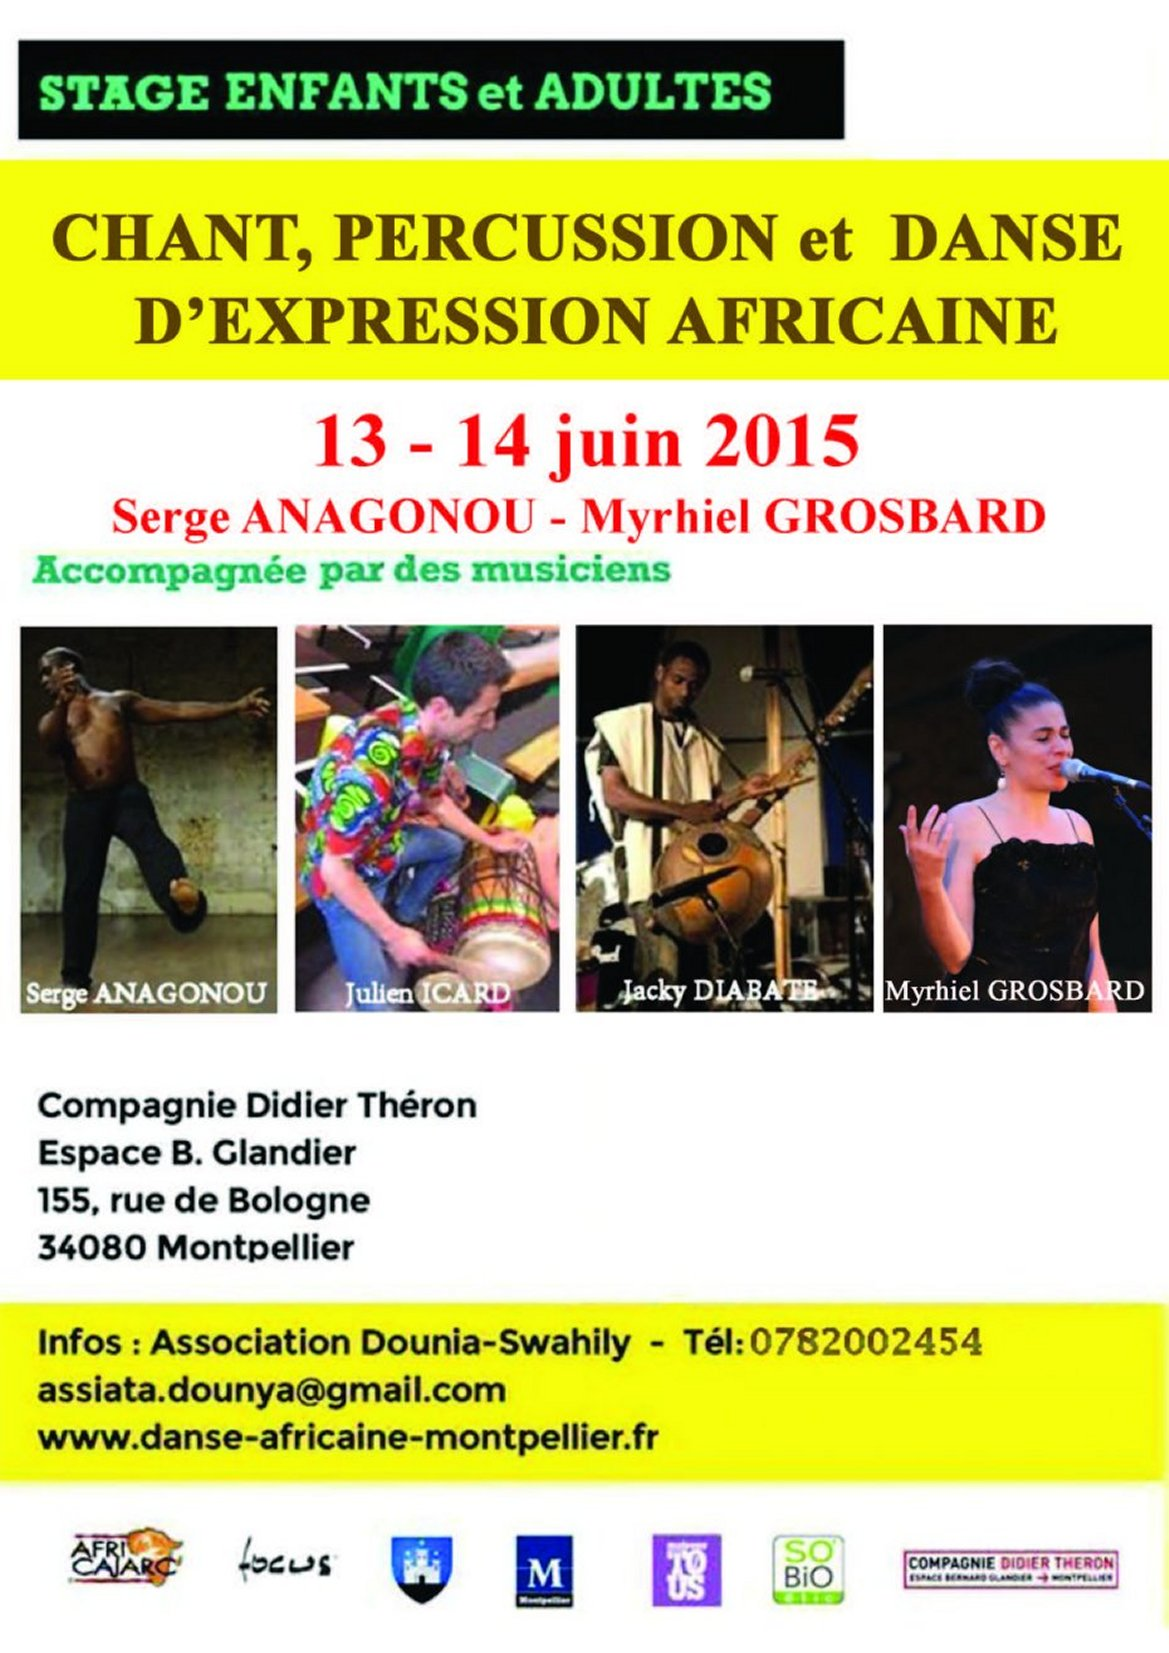 stage chants percu danse 13juin15 1